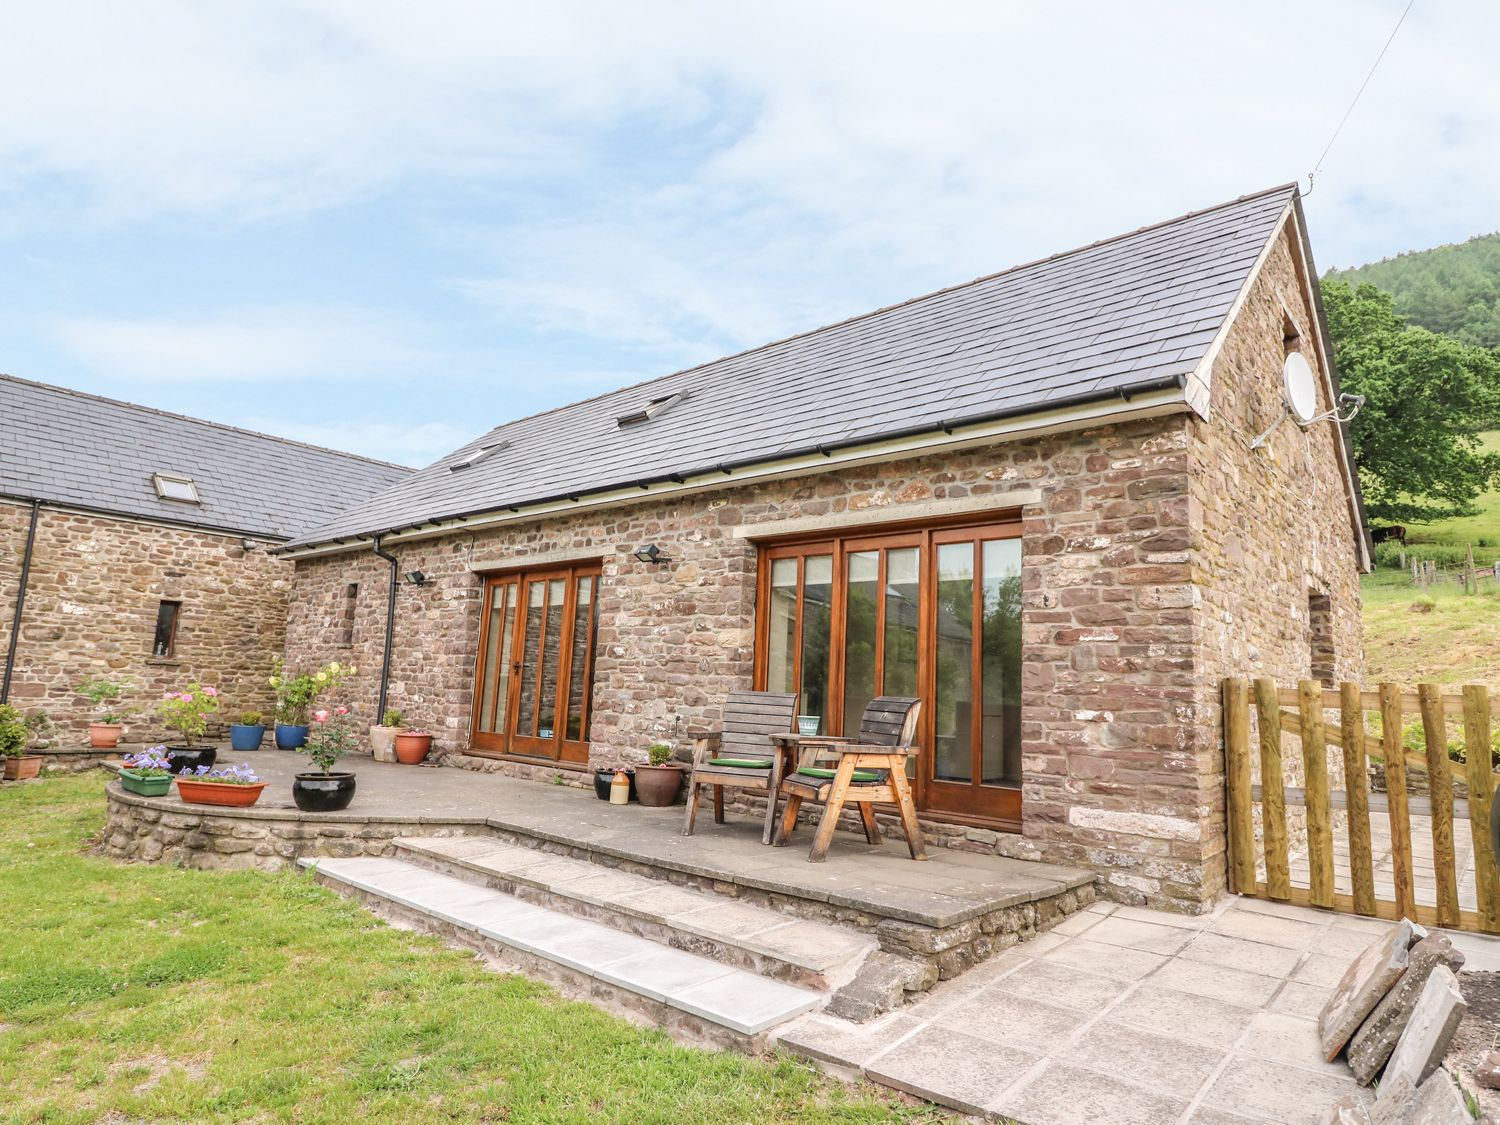 Cottage in Monmouthshire